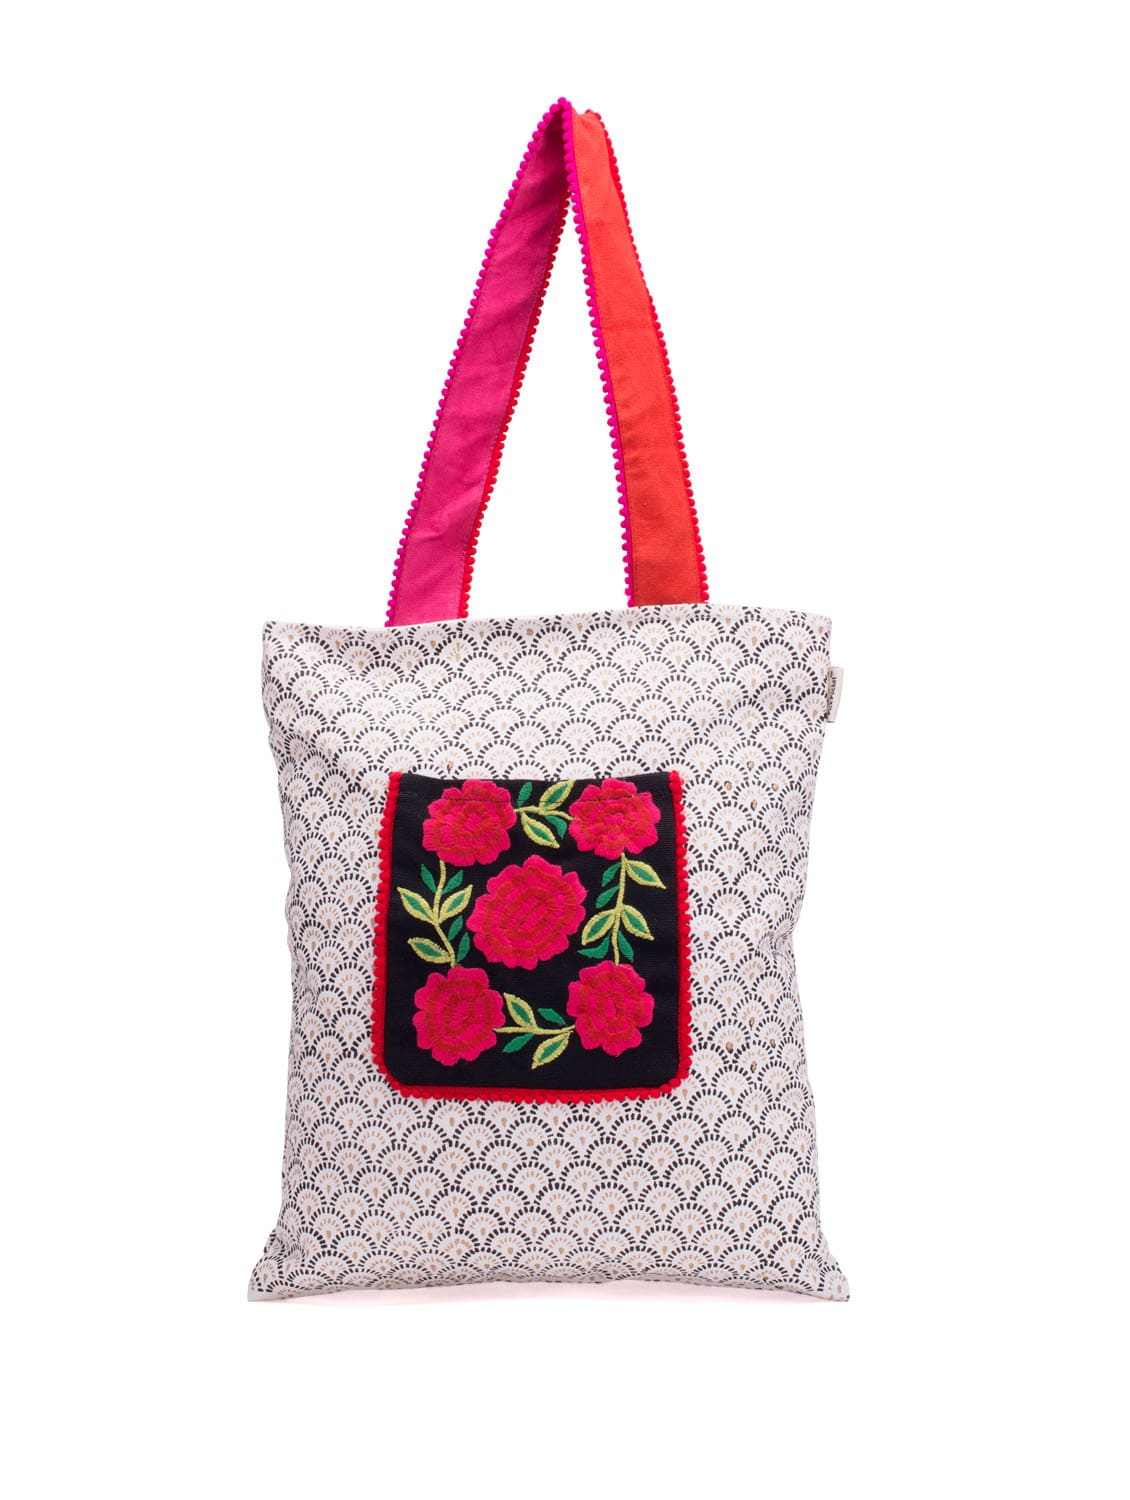 White Handbag With Floral Embroidery On The Pouch - Pick Pocket